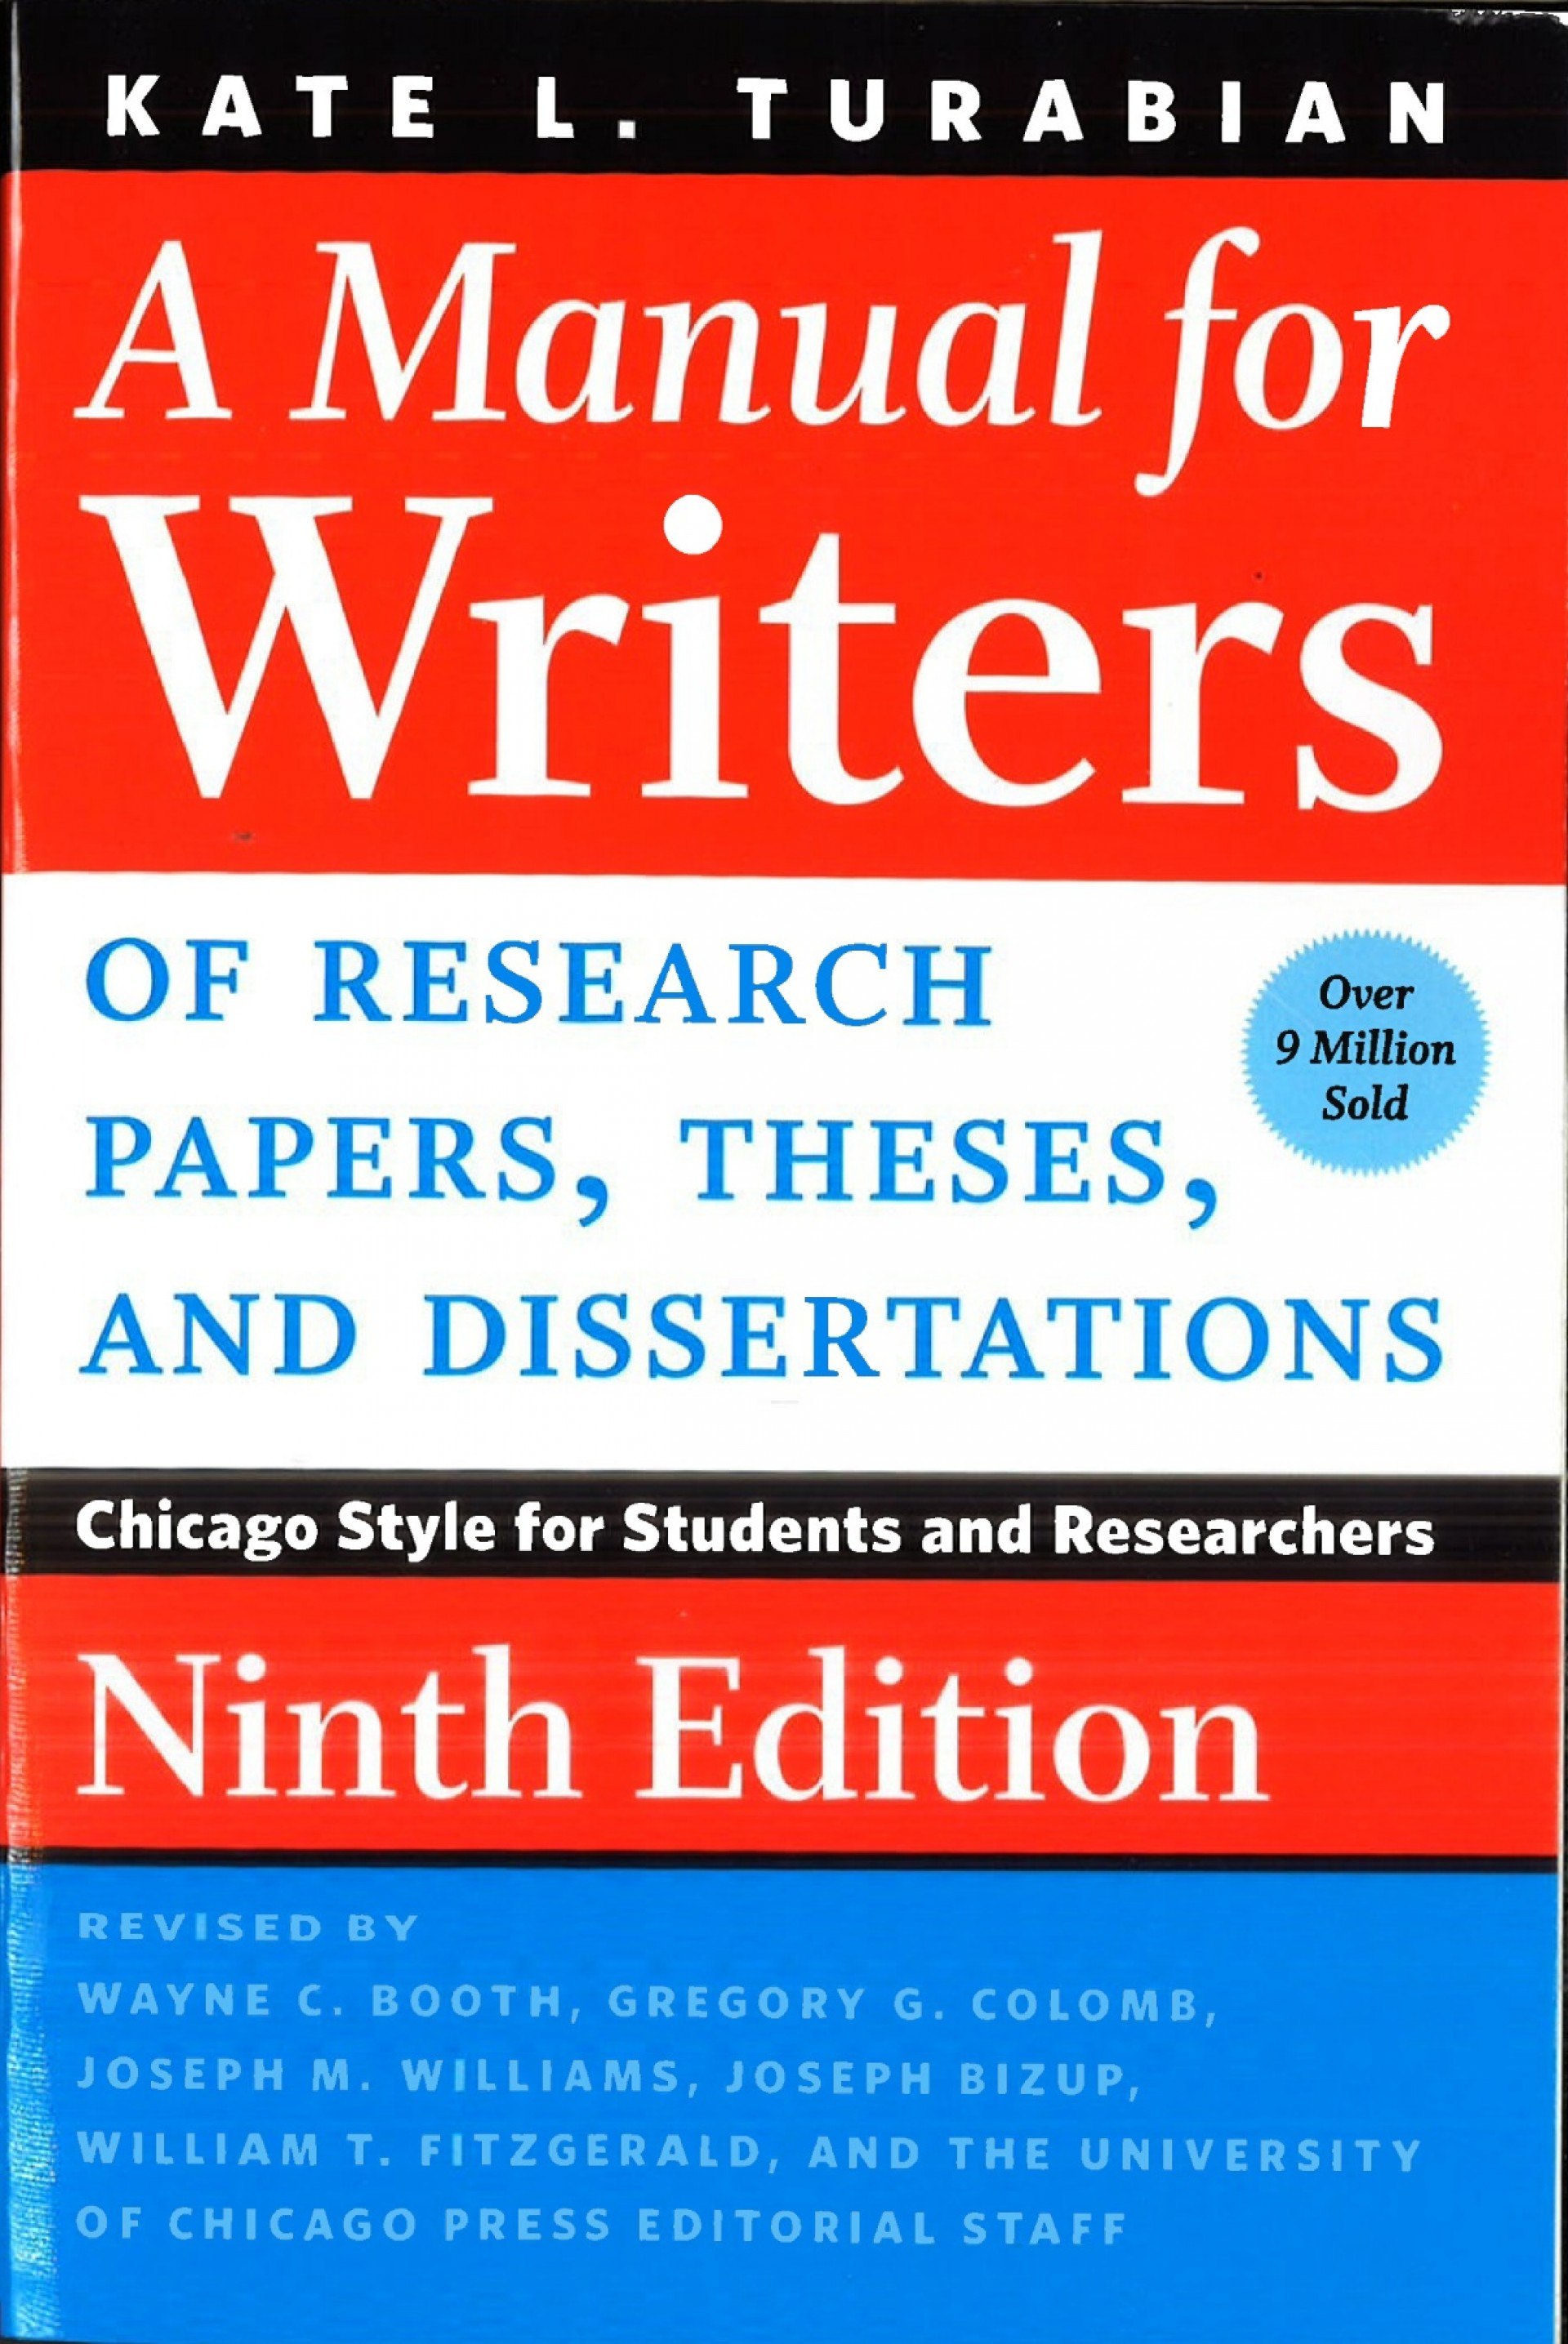 008 Research Paper Manual For Writers Of Papers Theses And Sensational A Dissertations Ed. 8 8th Edition Ninth Pdf 1920